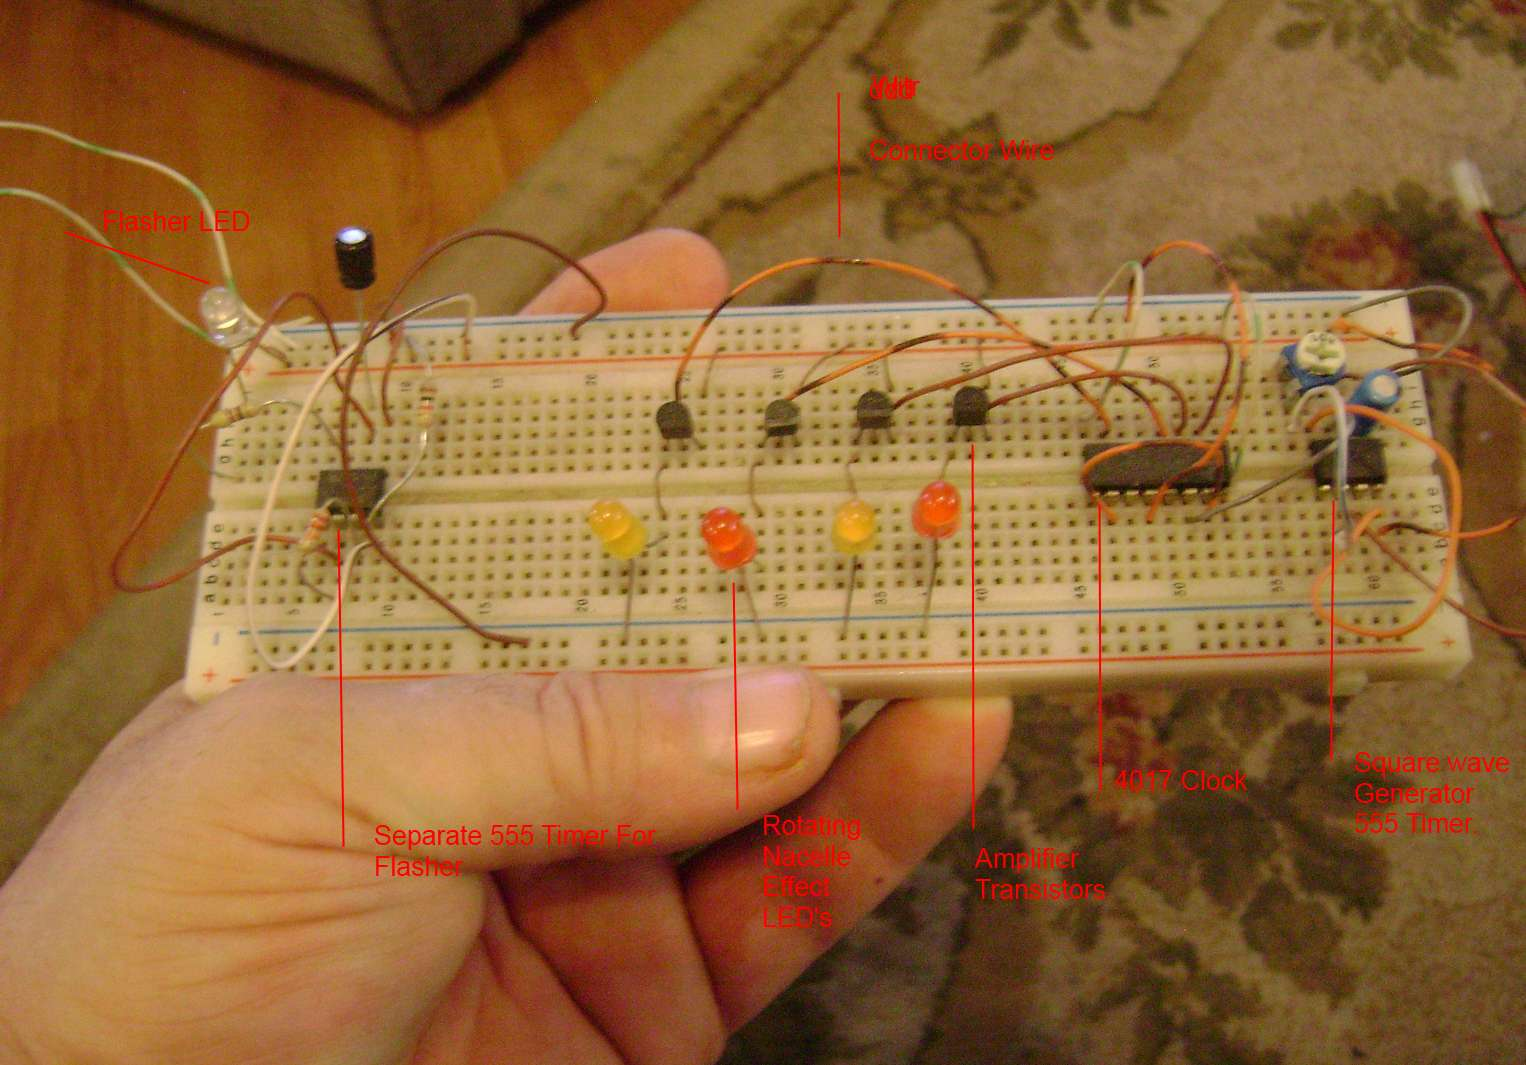 Kirktrekmodelers Model Blog Electronics For 5 Led Chaser Circuit Using 555 Chip Forum Circuits Below You See Im One Of Those Try Me Buttons To Check And Sort Out All My Leds From Recent Builds